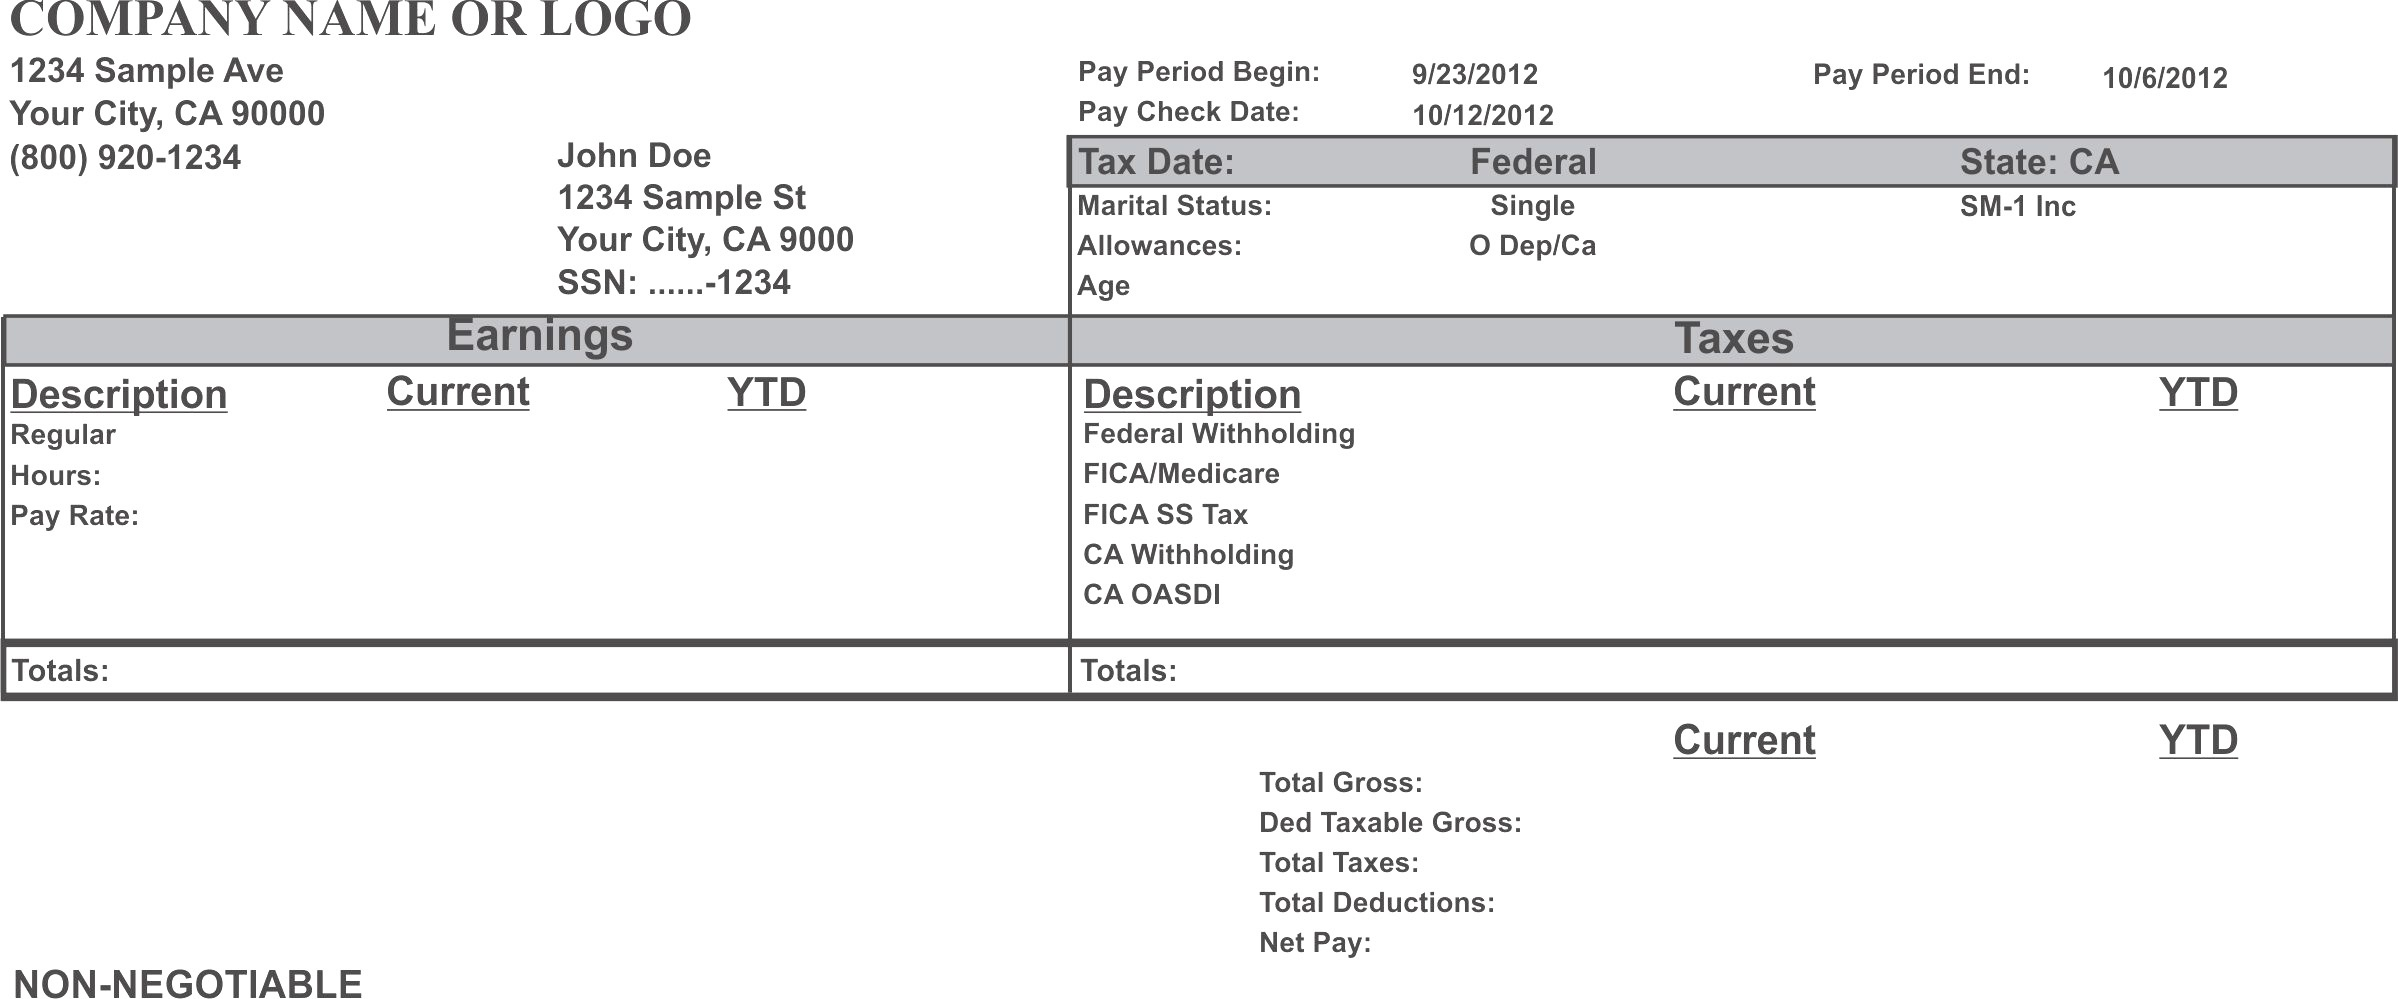 Adp Pay Stub Template Free - Printable Pay Stub Template Free